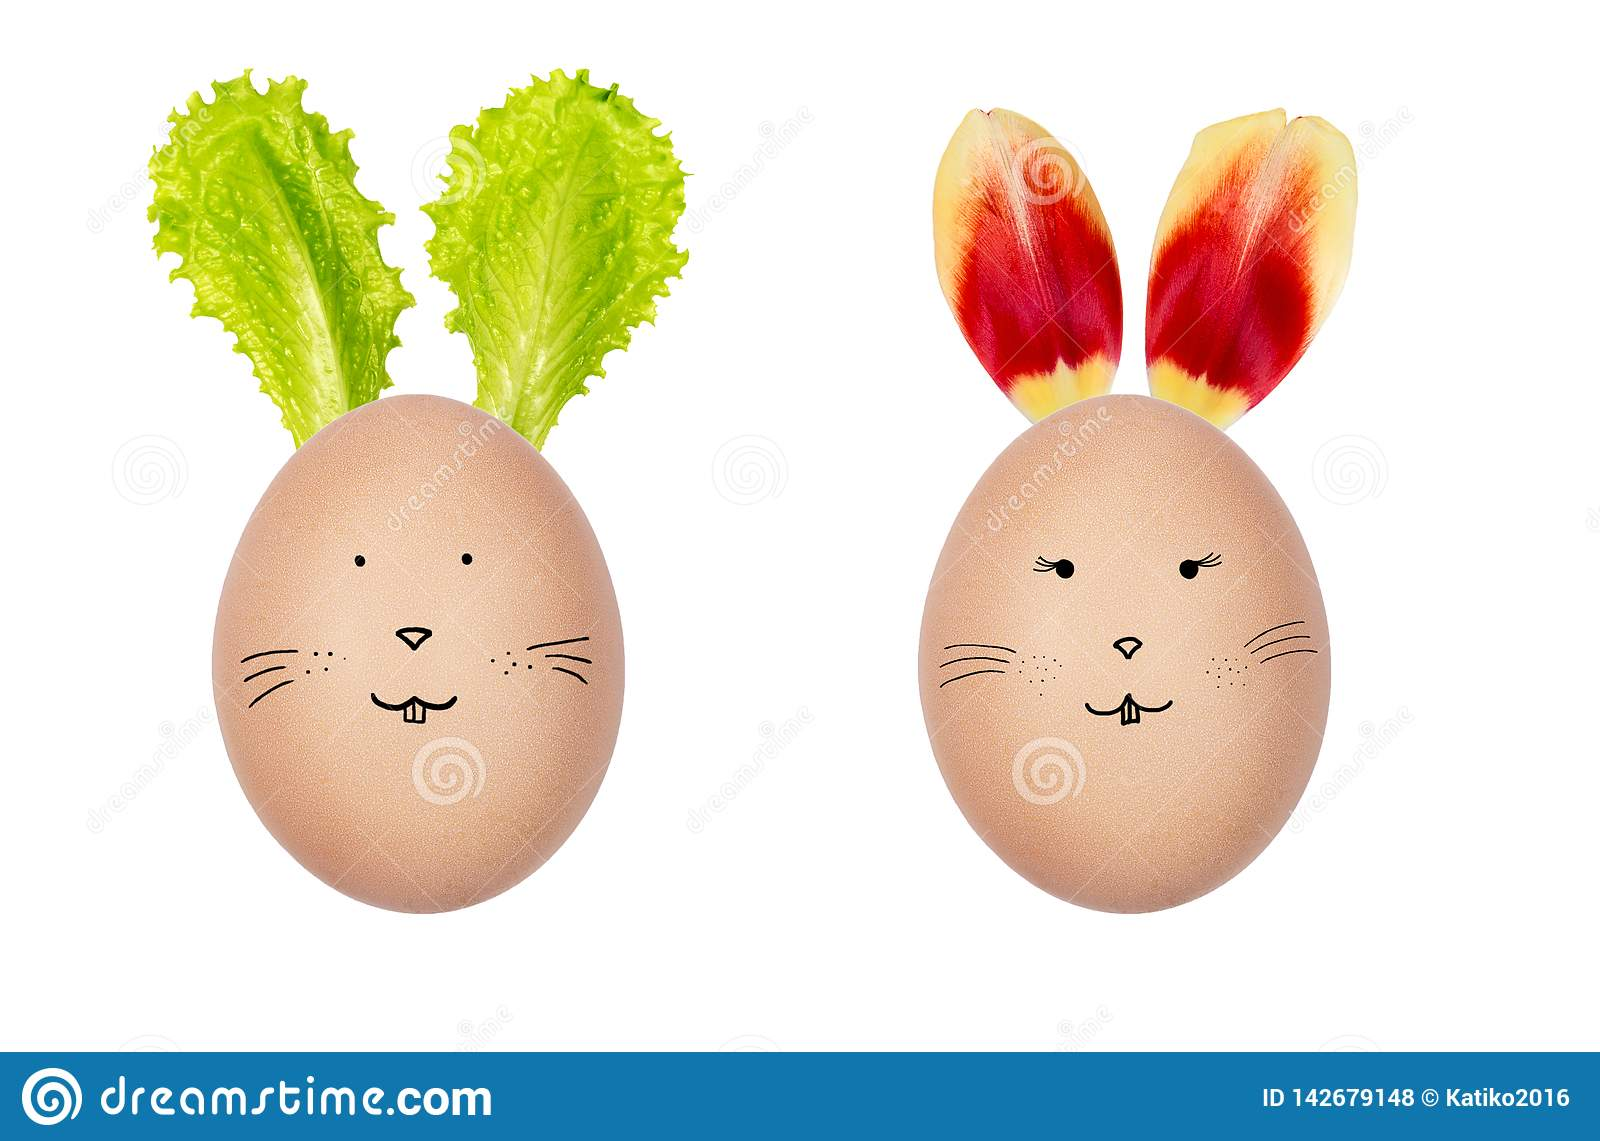 Funny Easter eggs decorated with fresh salad leaves and tulip petals. Bunny faces drawn on the eggs. Creative Easter decoration.